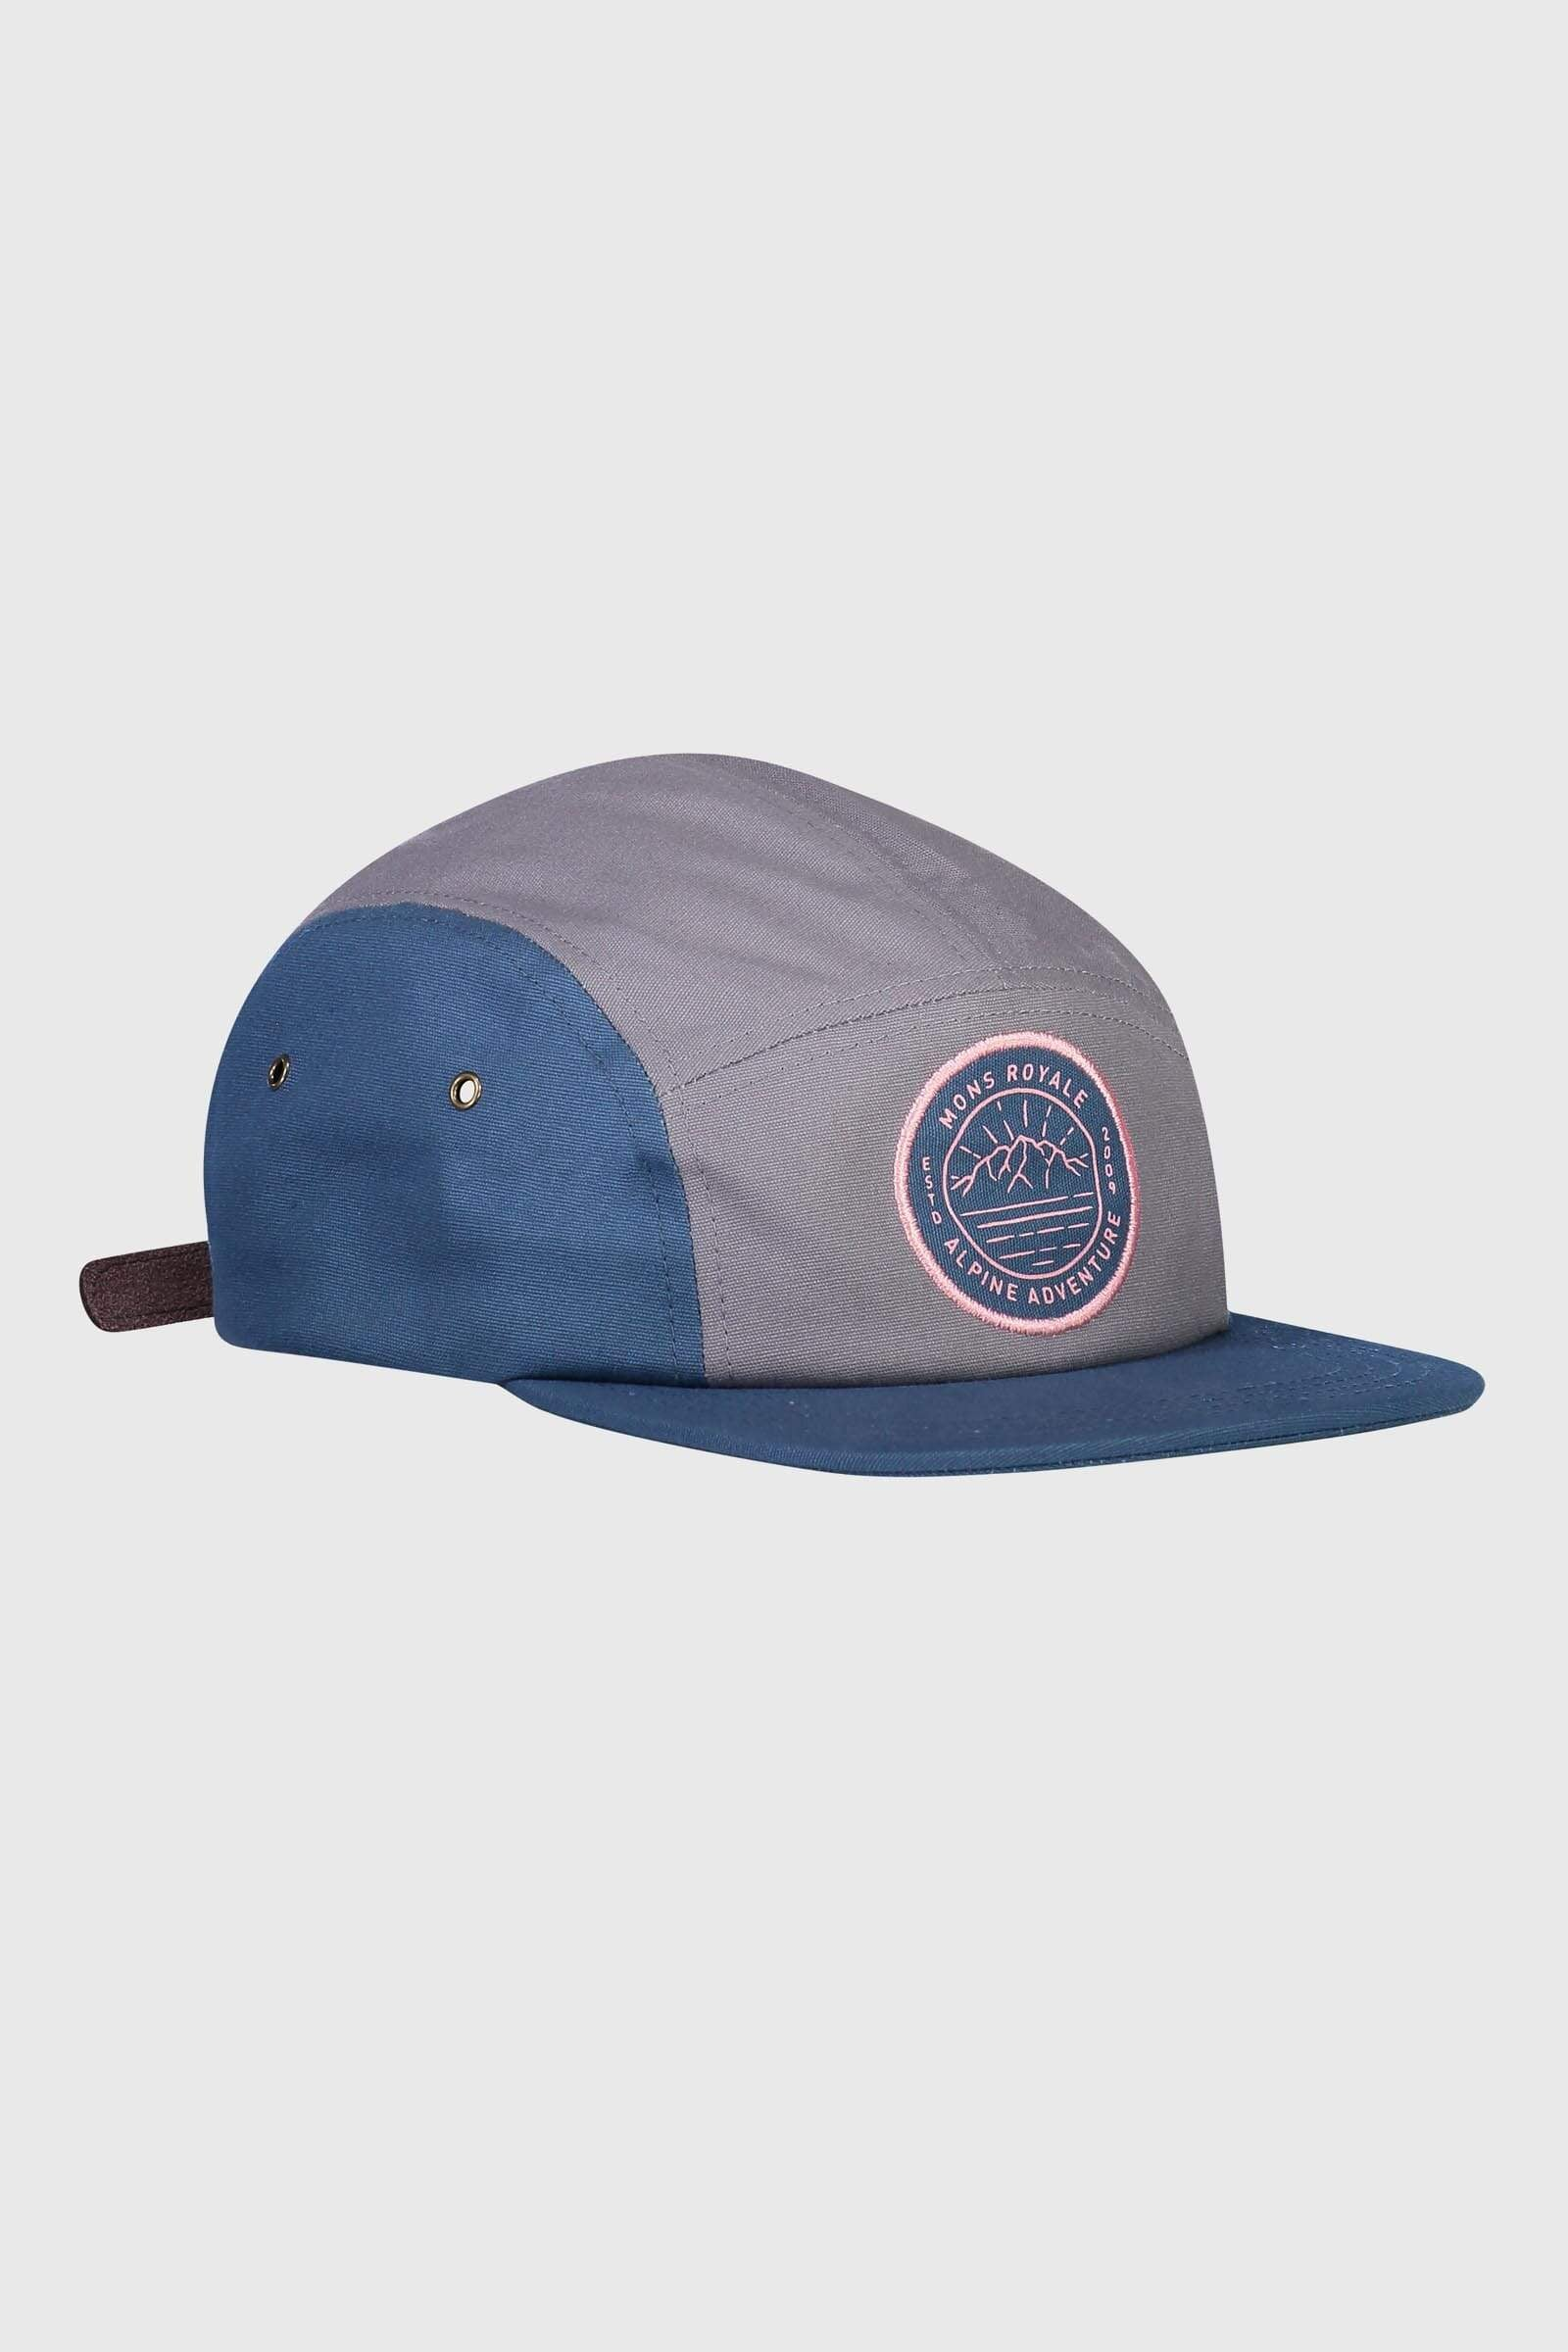 Beattie 5 Panel Cap - Denim / Grey